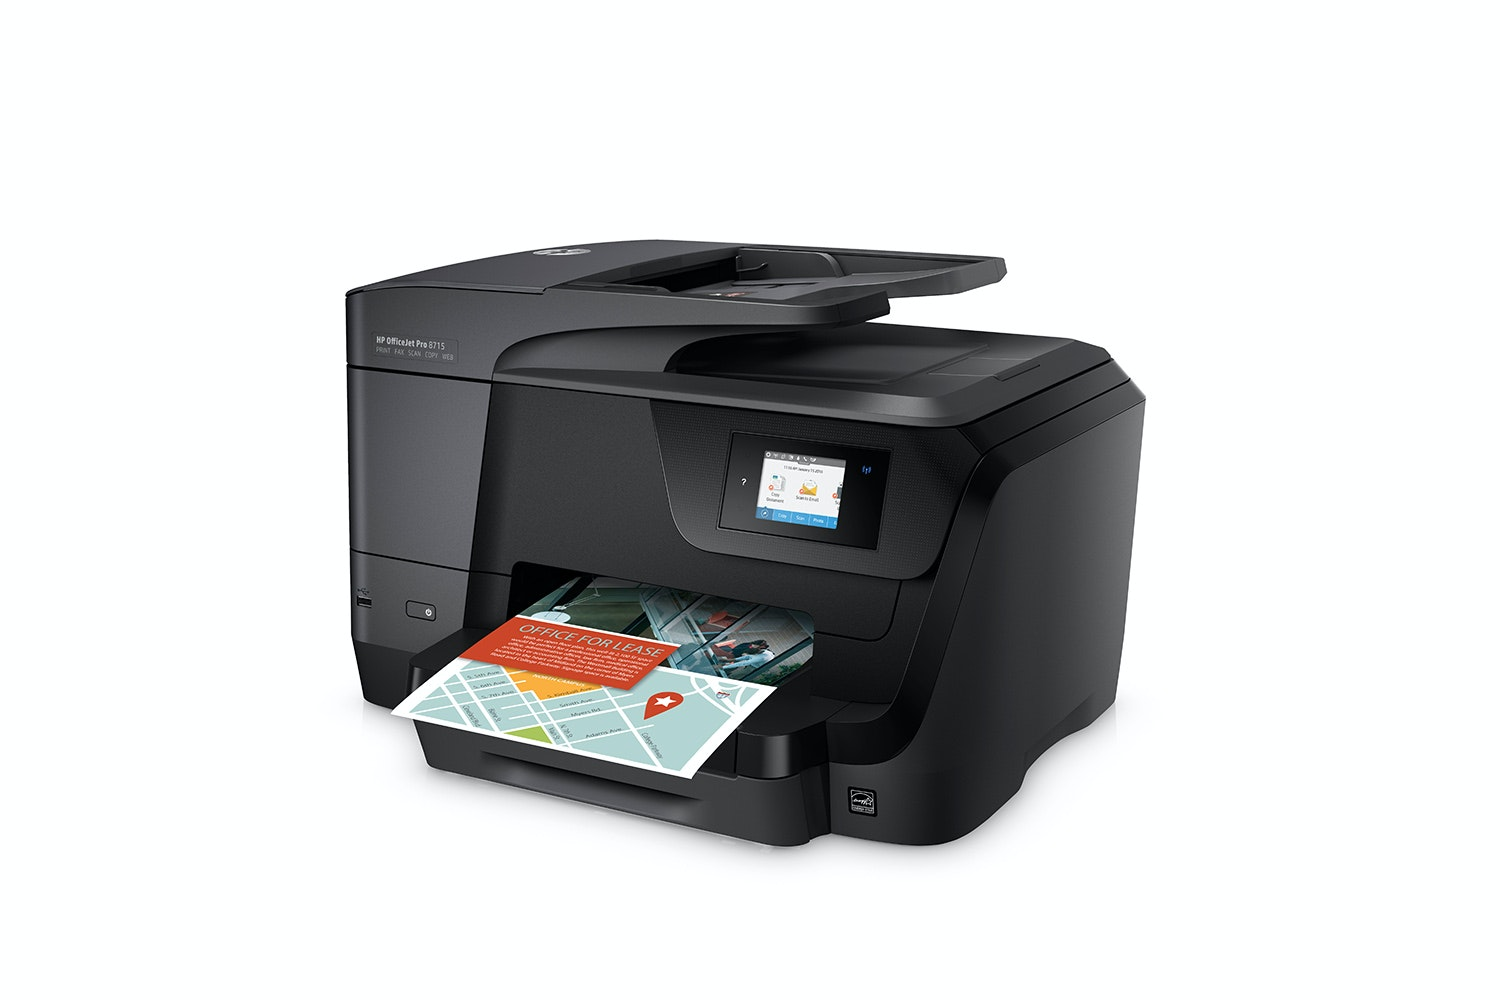 HP Officejet Pro 8715 All In One Printer | Black